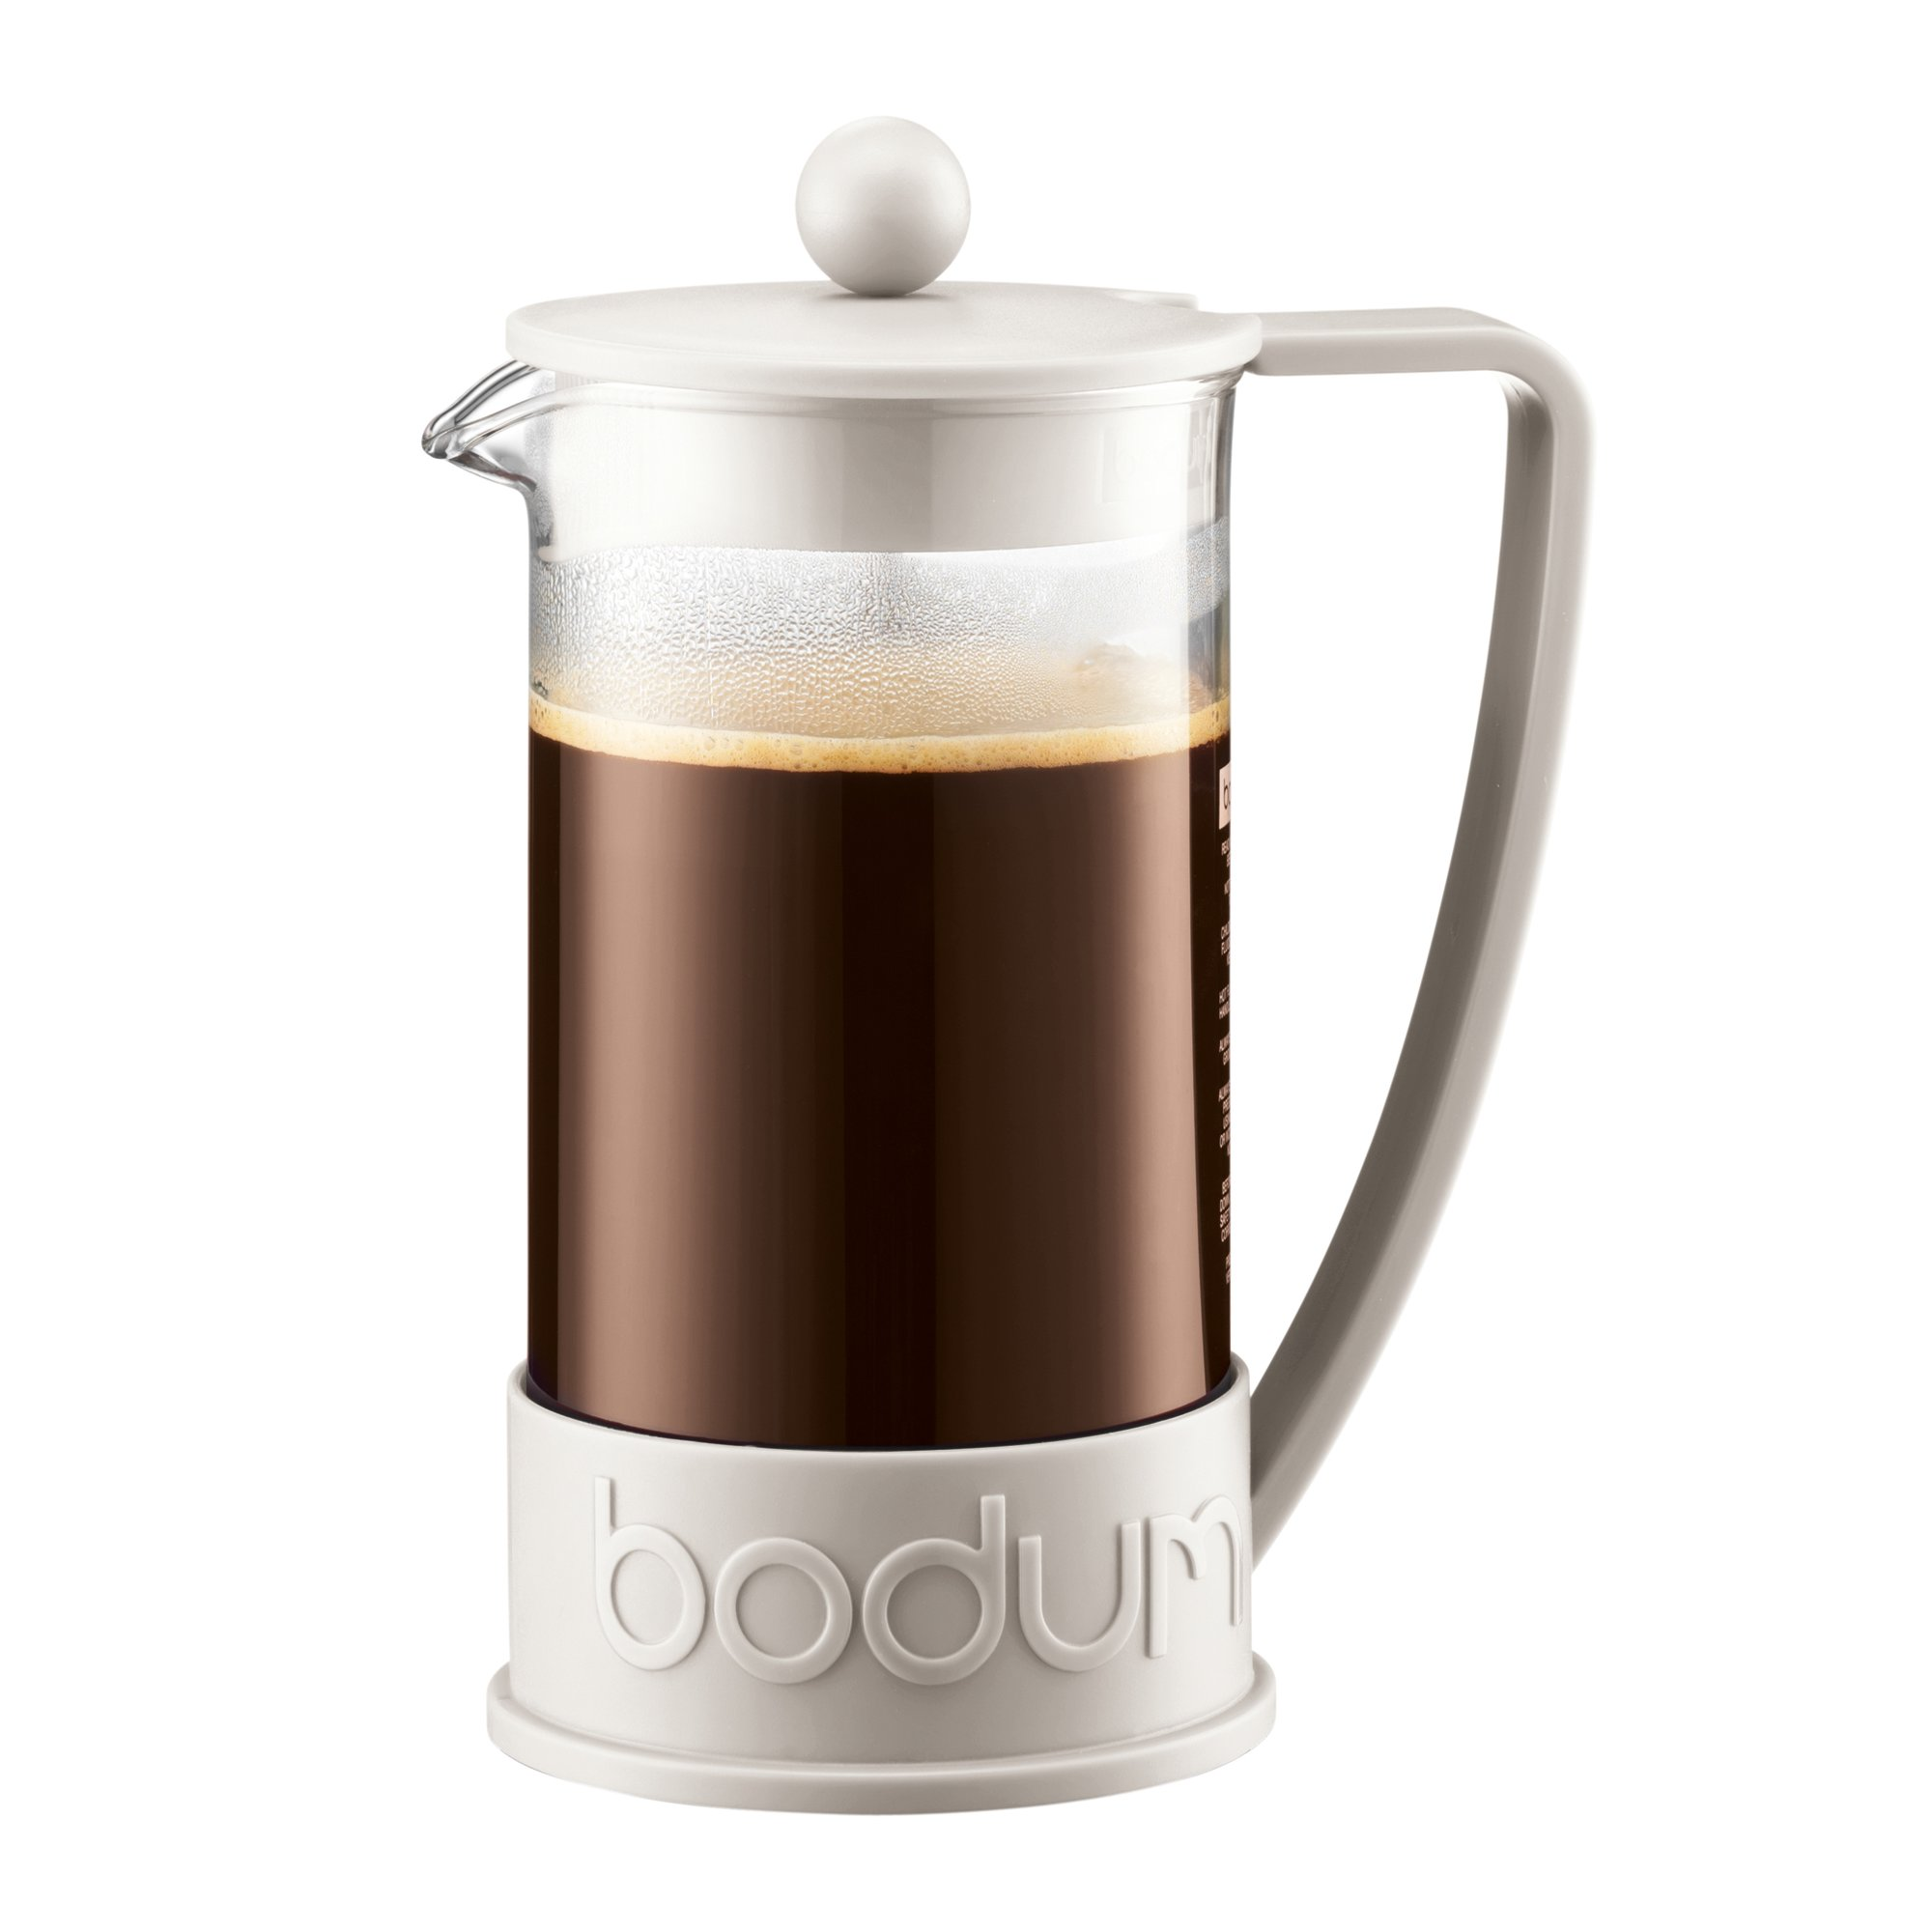 Bodum Coffee Press - White